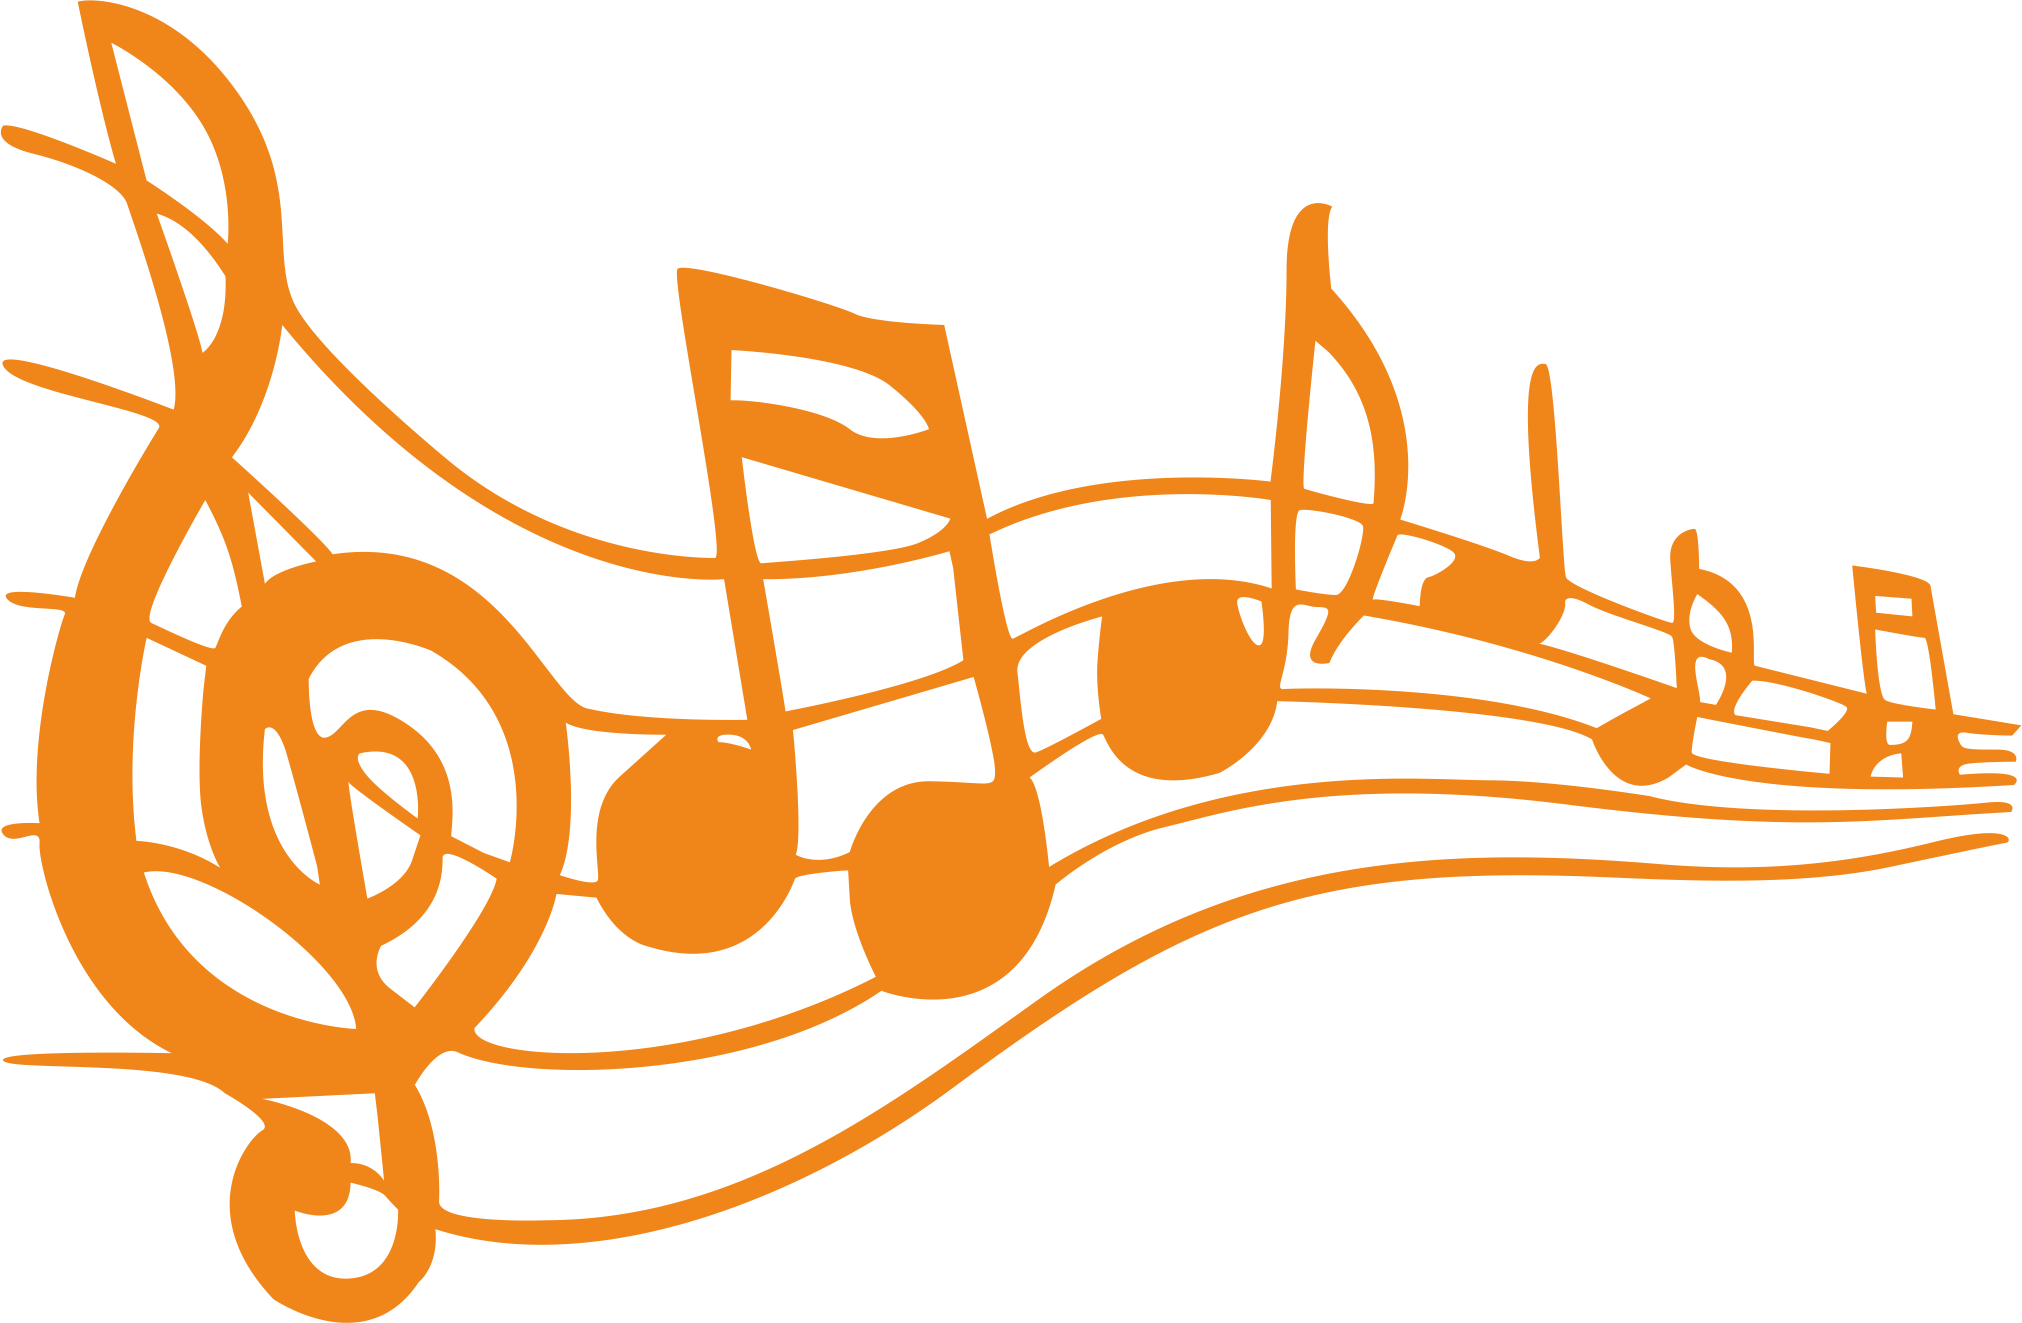 Musical note free content. Musician clipart boy singer